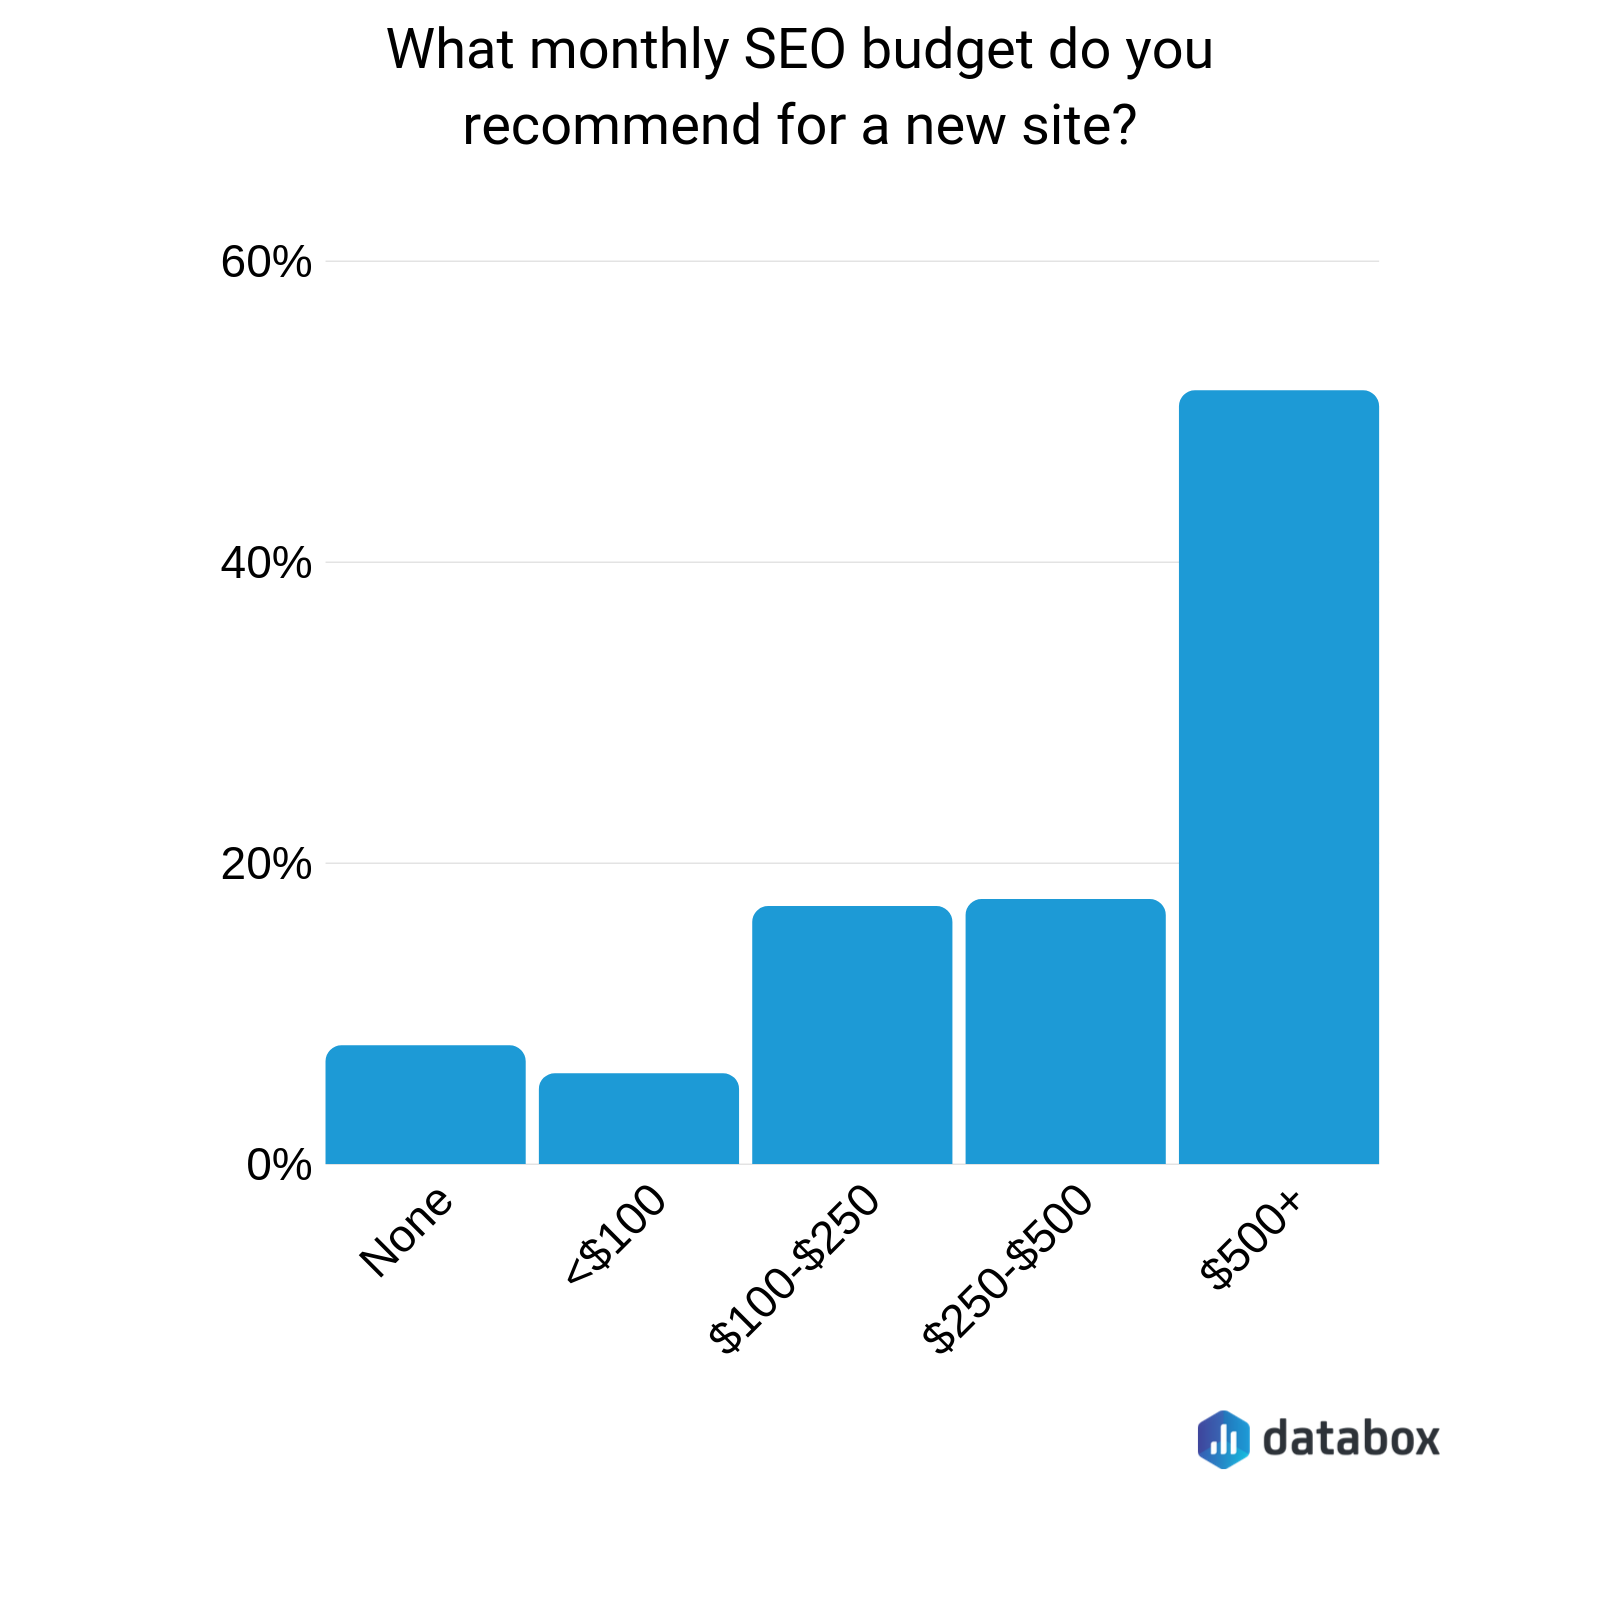 recommended new site seo budget per month